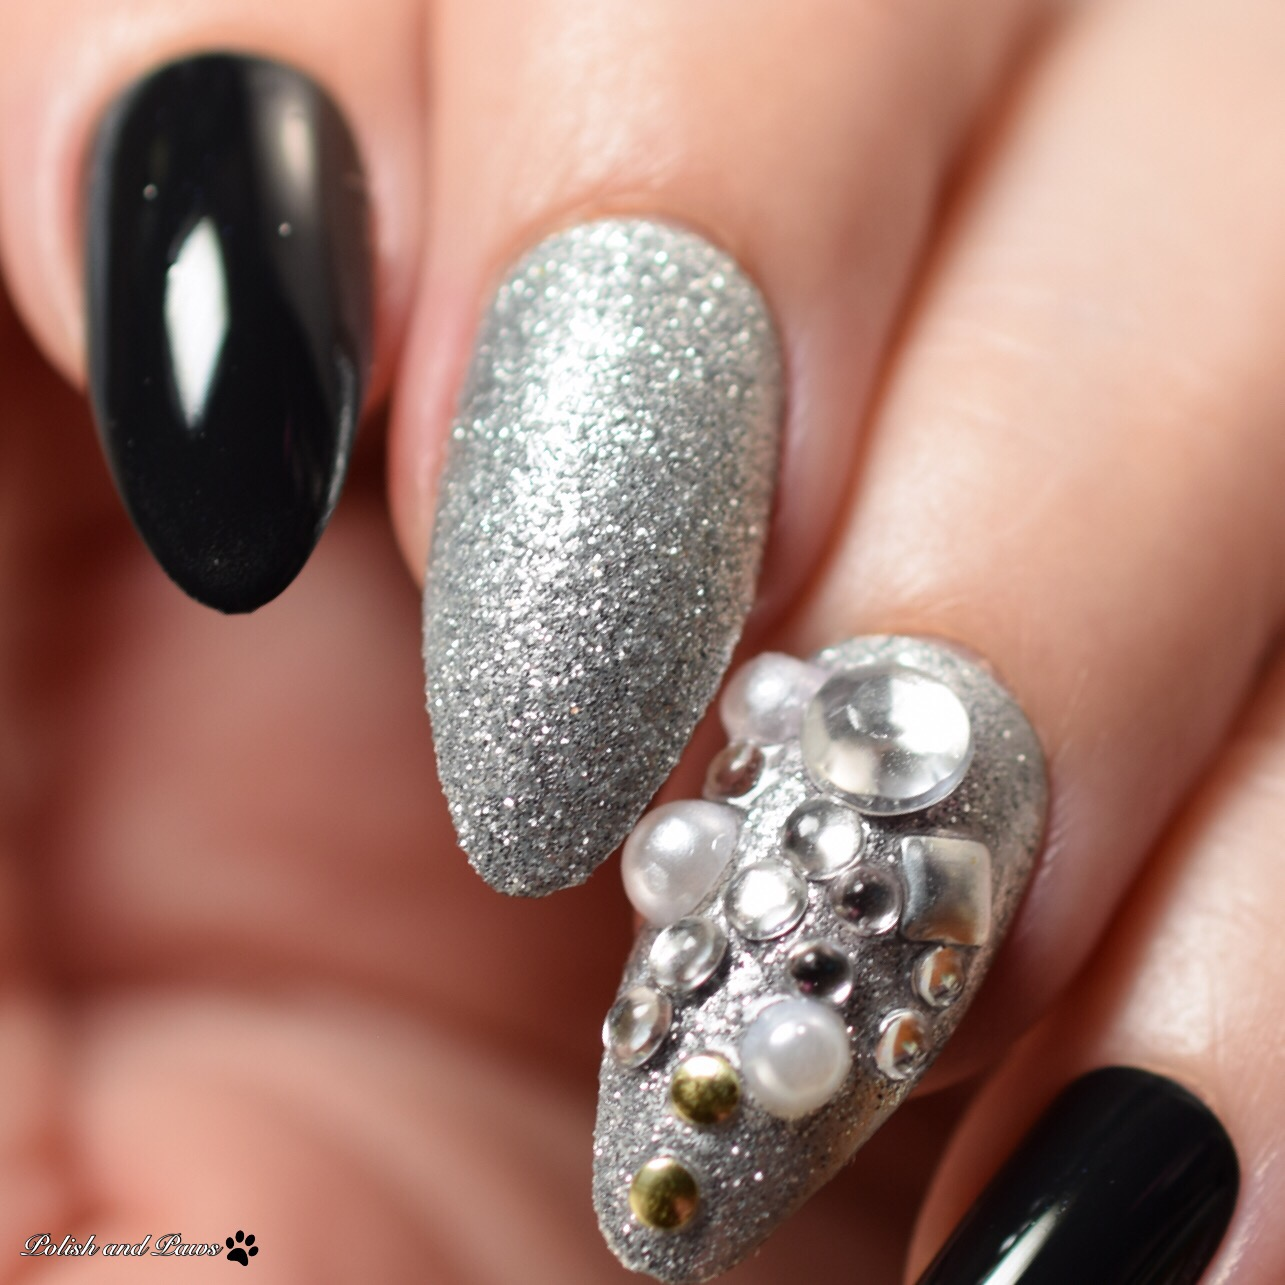 Pretty Woman NYC Professional Artificial Nails